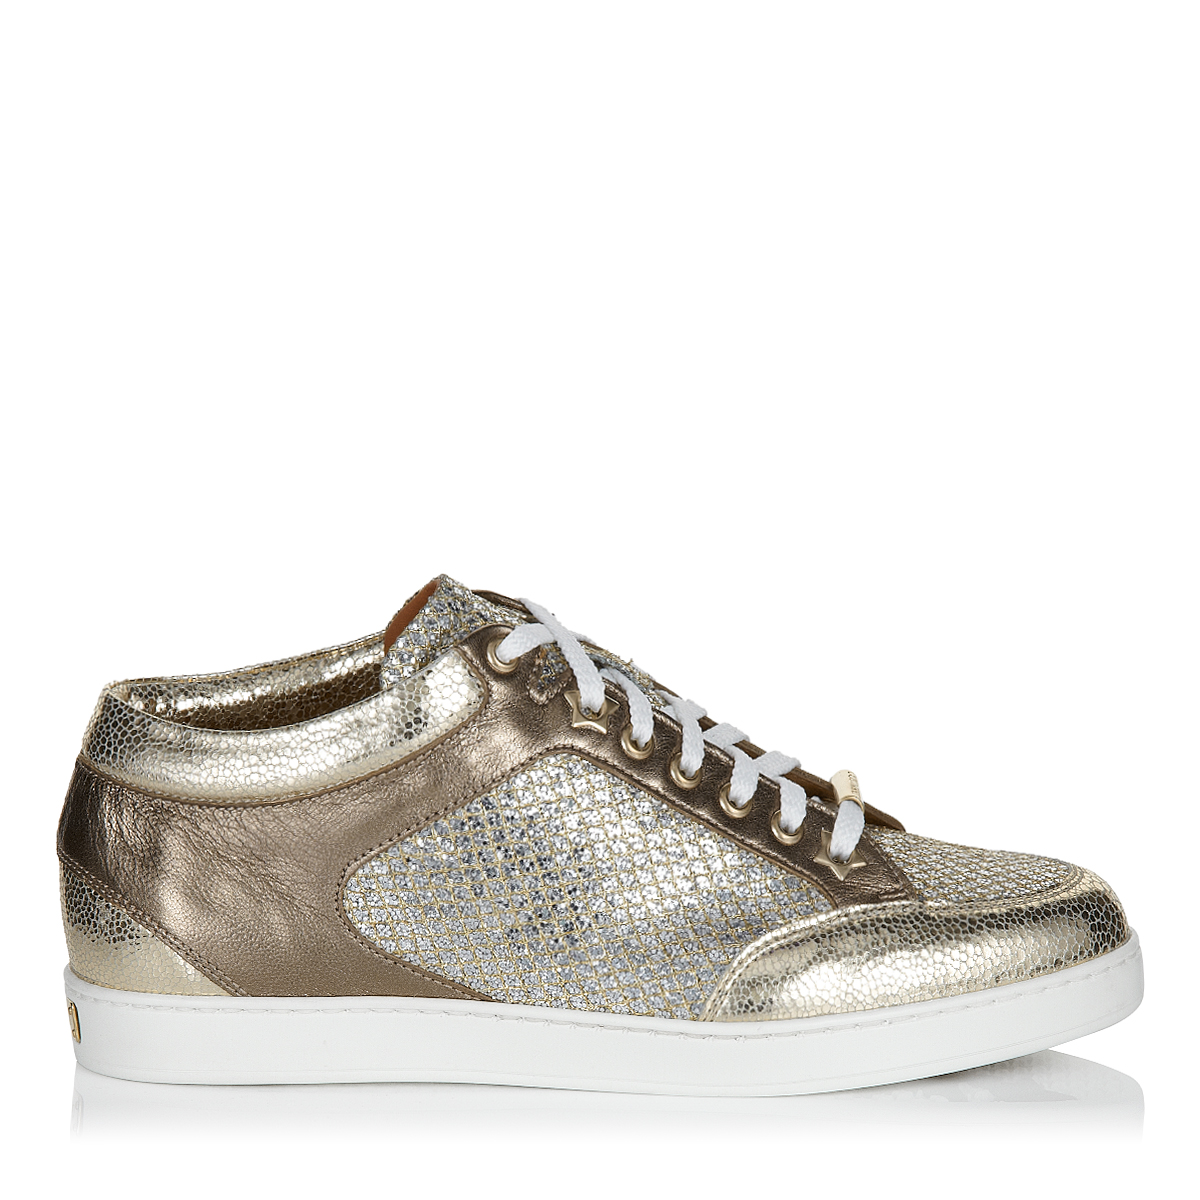 MIAMI Champagne Glitter Fabric and Suede Trainers